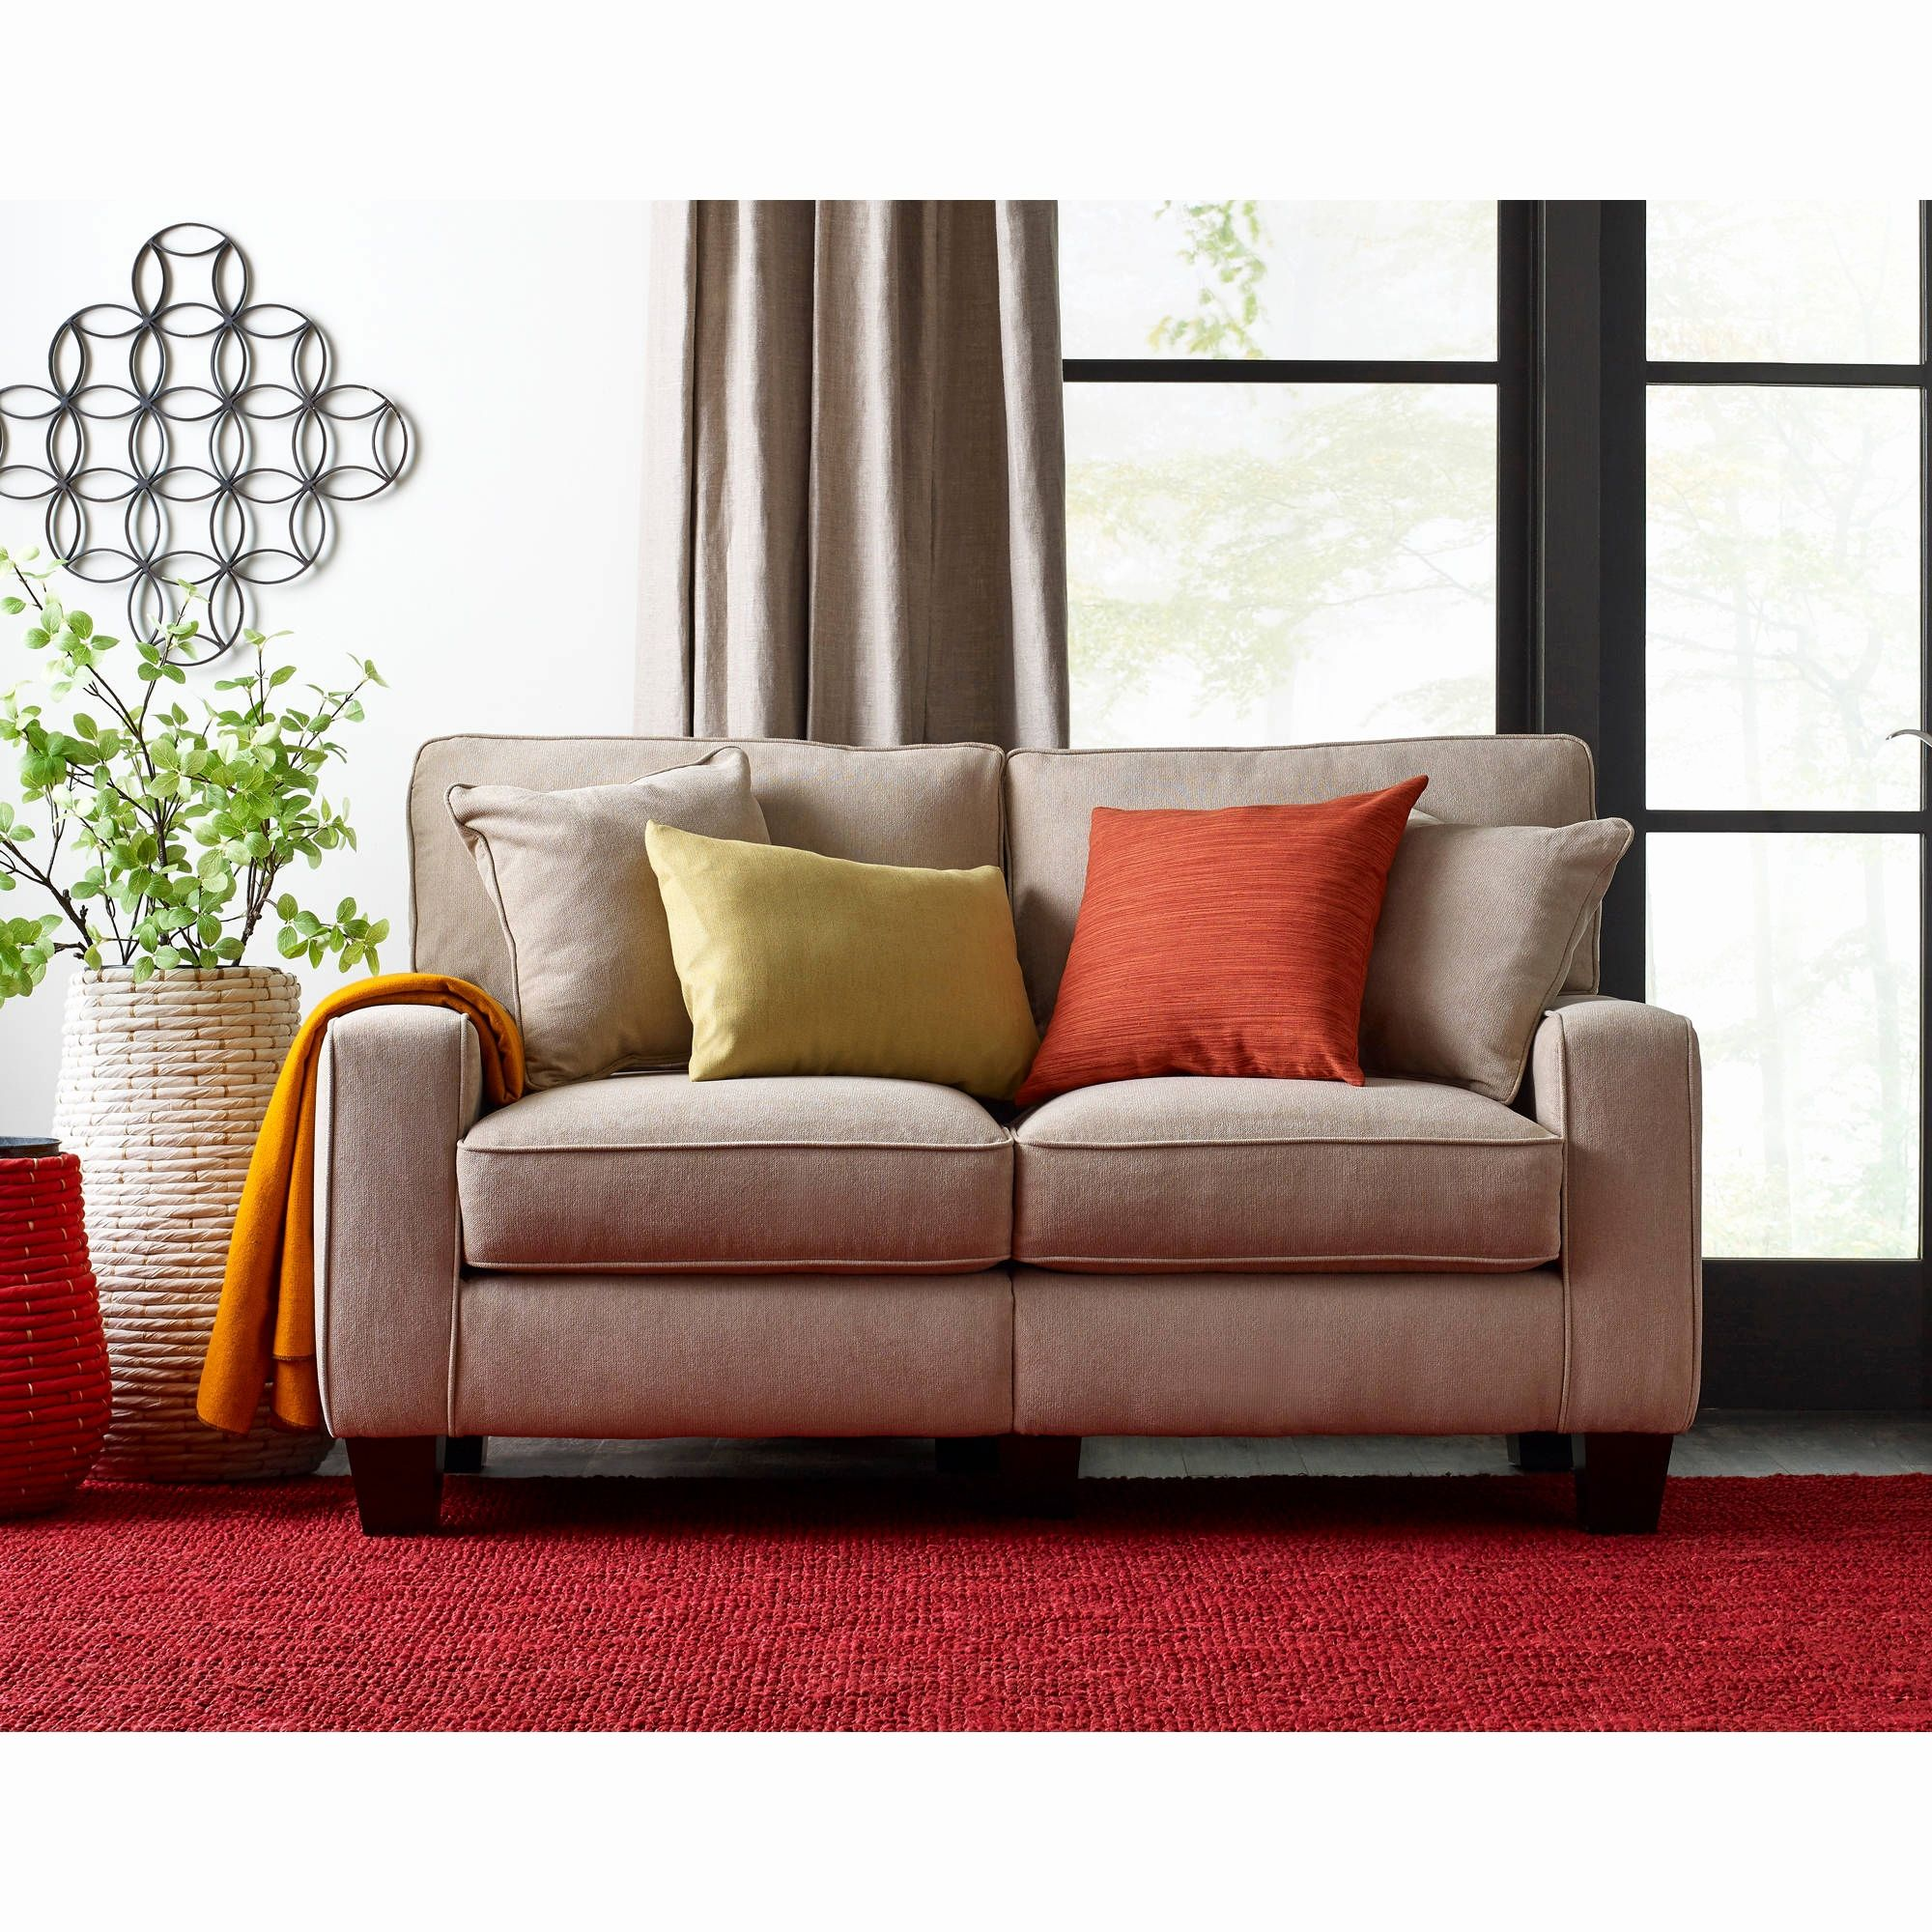 Awesome Used Sectional Sofas Images Best Of Under 200 Rob 22 Aronson